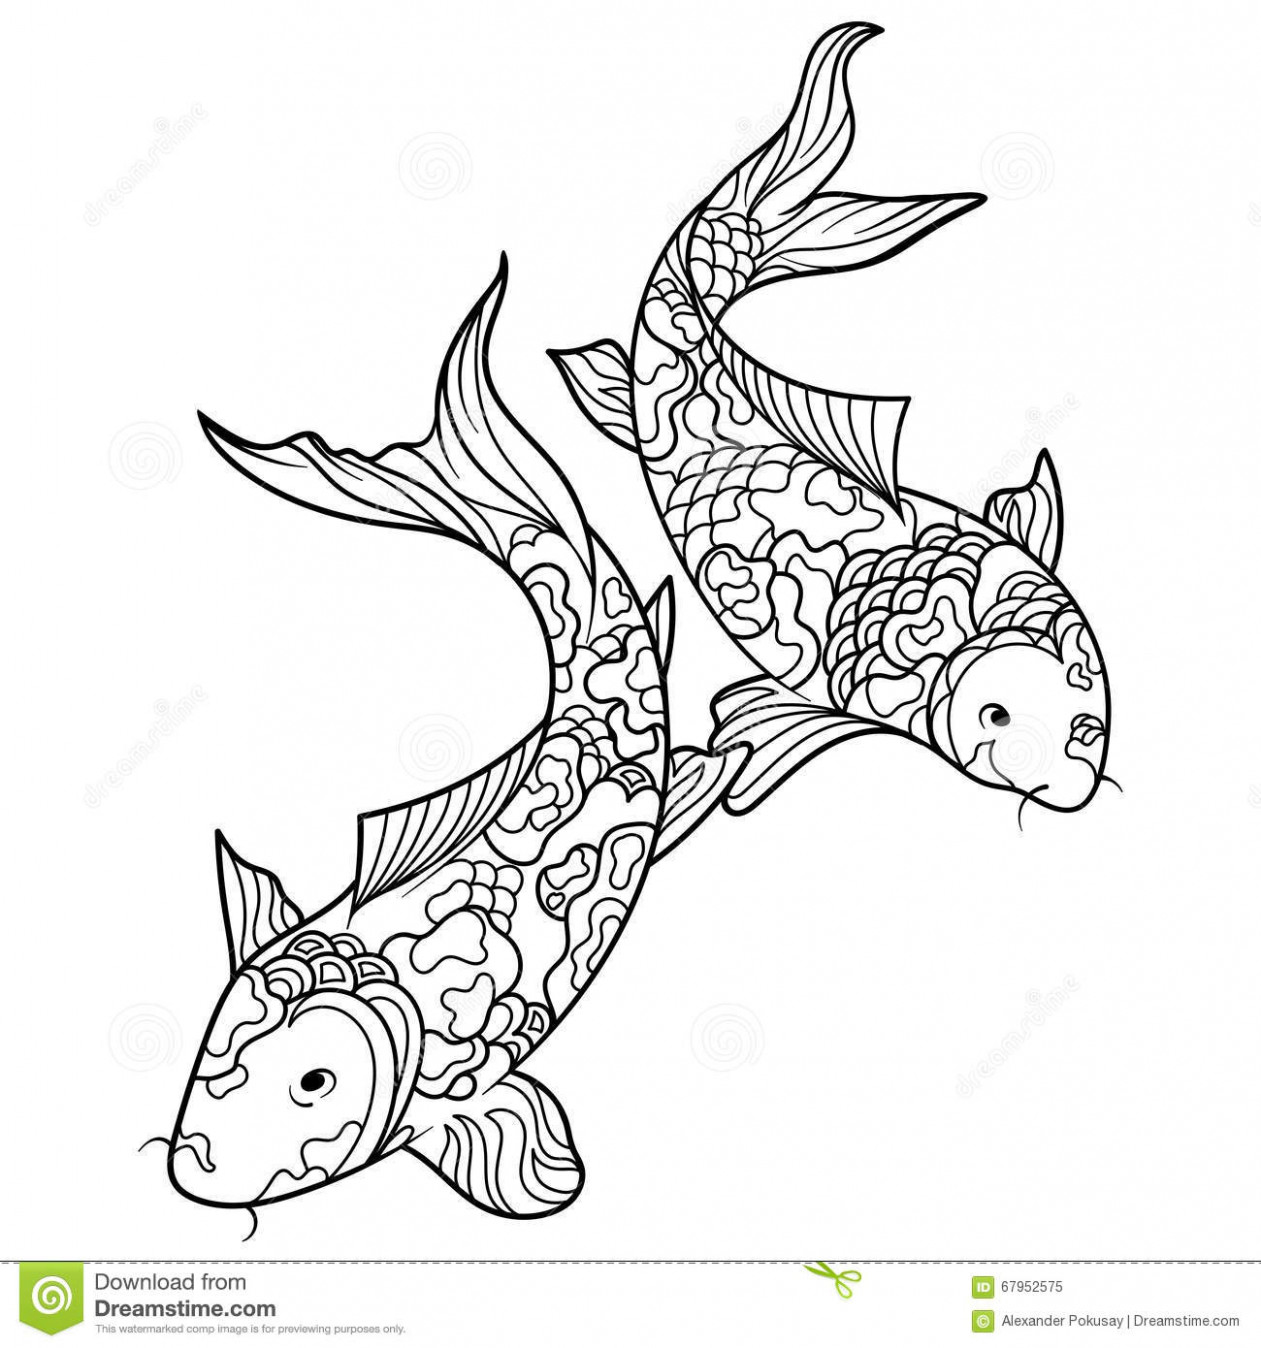 Koi Carp Fish Coloring Book For Adults Vector Stock Vector ..